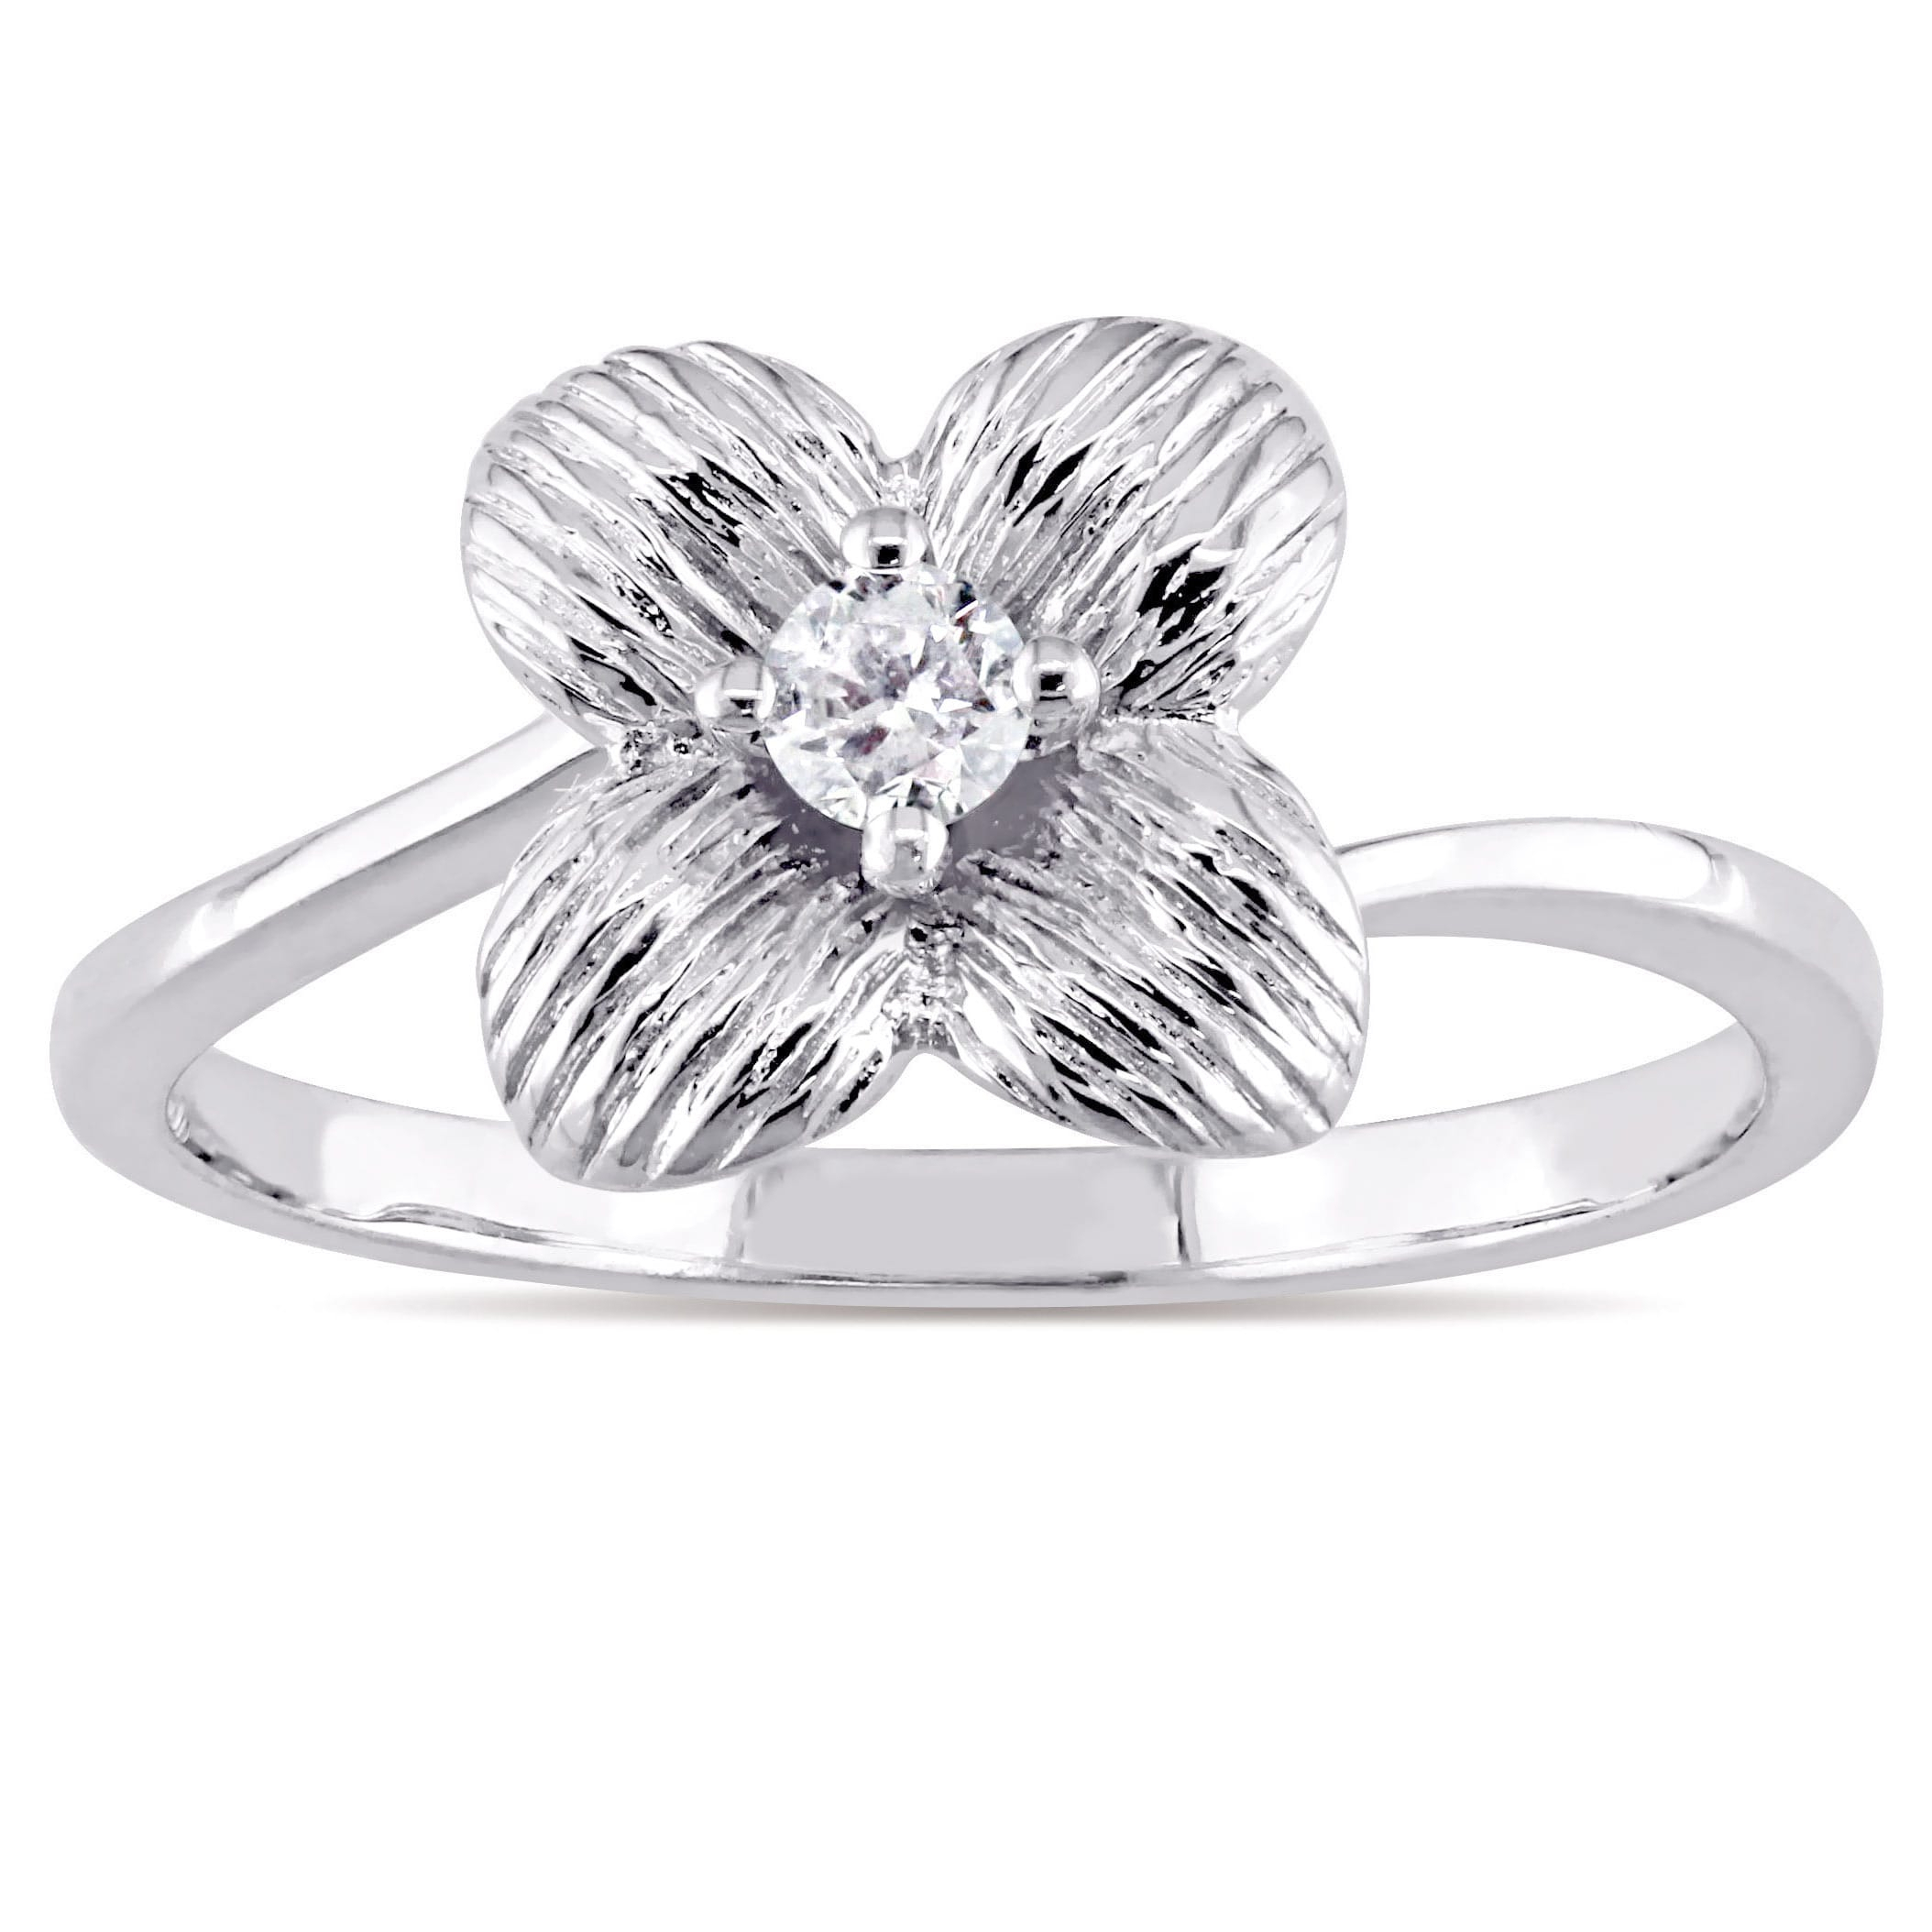 10K White Gold 1/10Ct Tdw Diamond Textured Four Petal Flower Ring Pertaining To Current Four Petal Flower Rings (View 1 of 25)